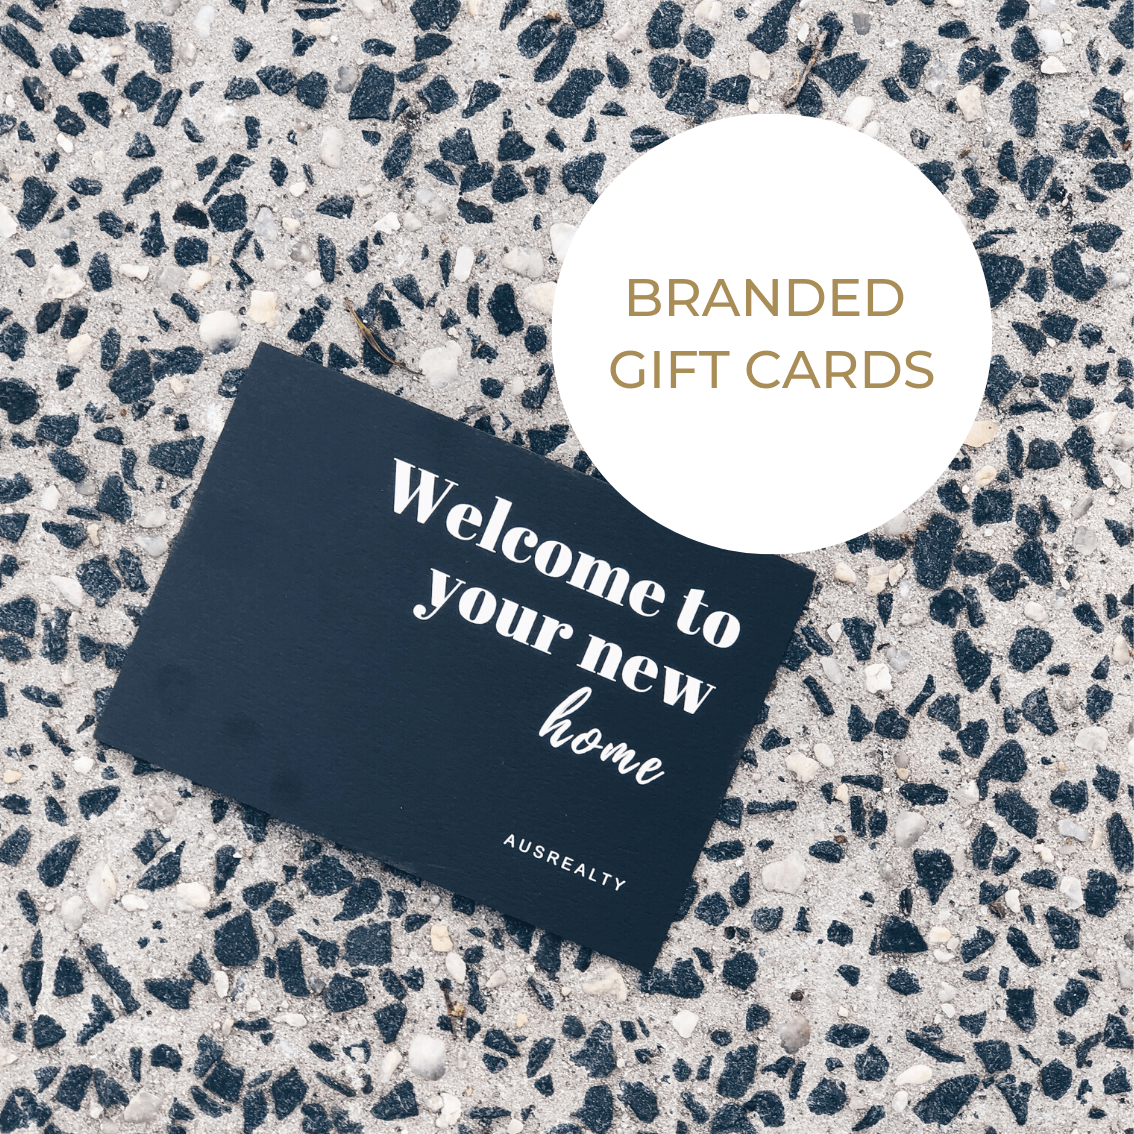 Branded Gift Cards